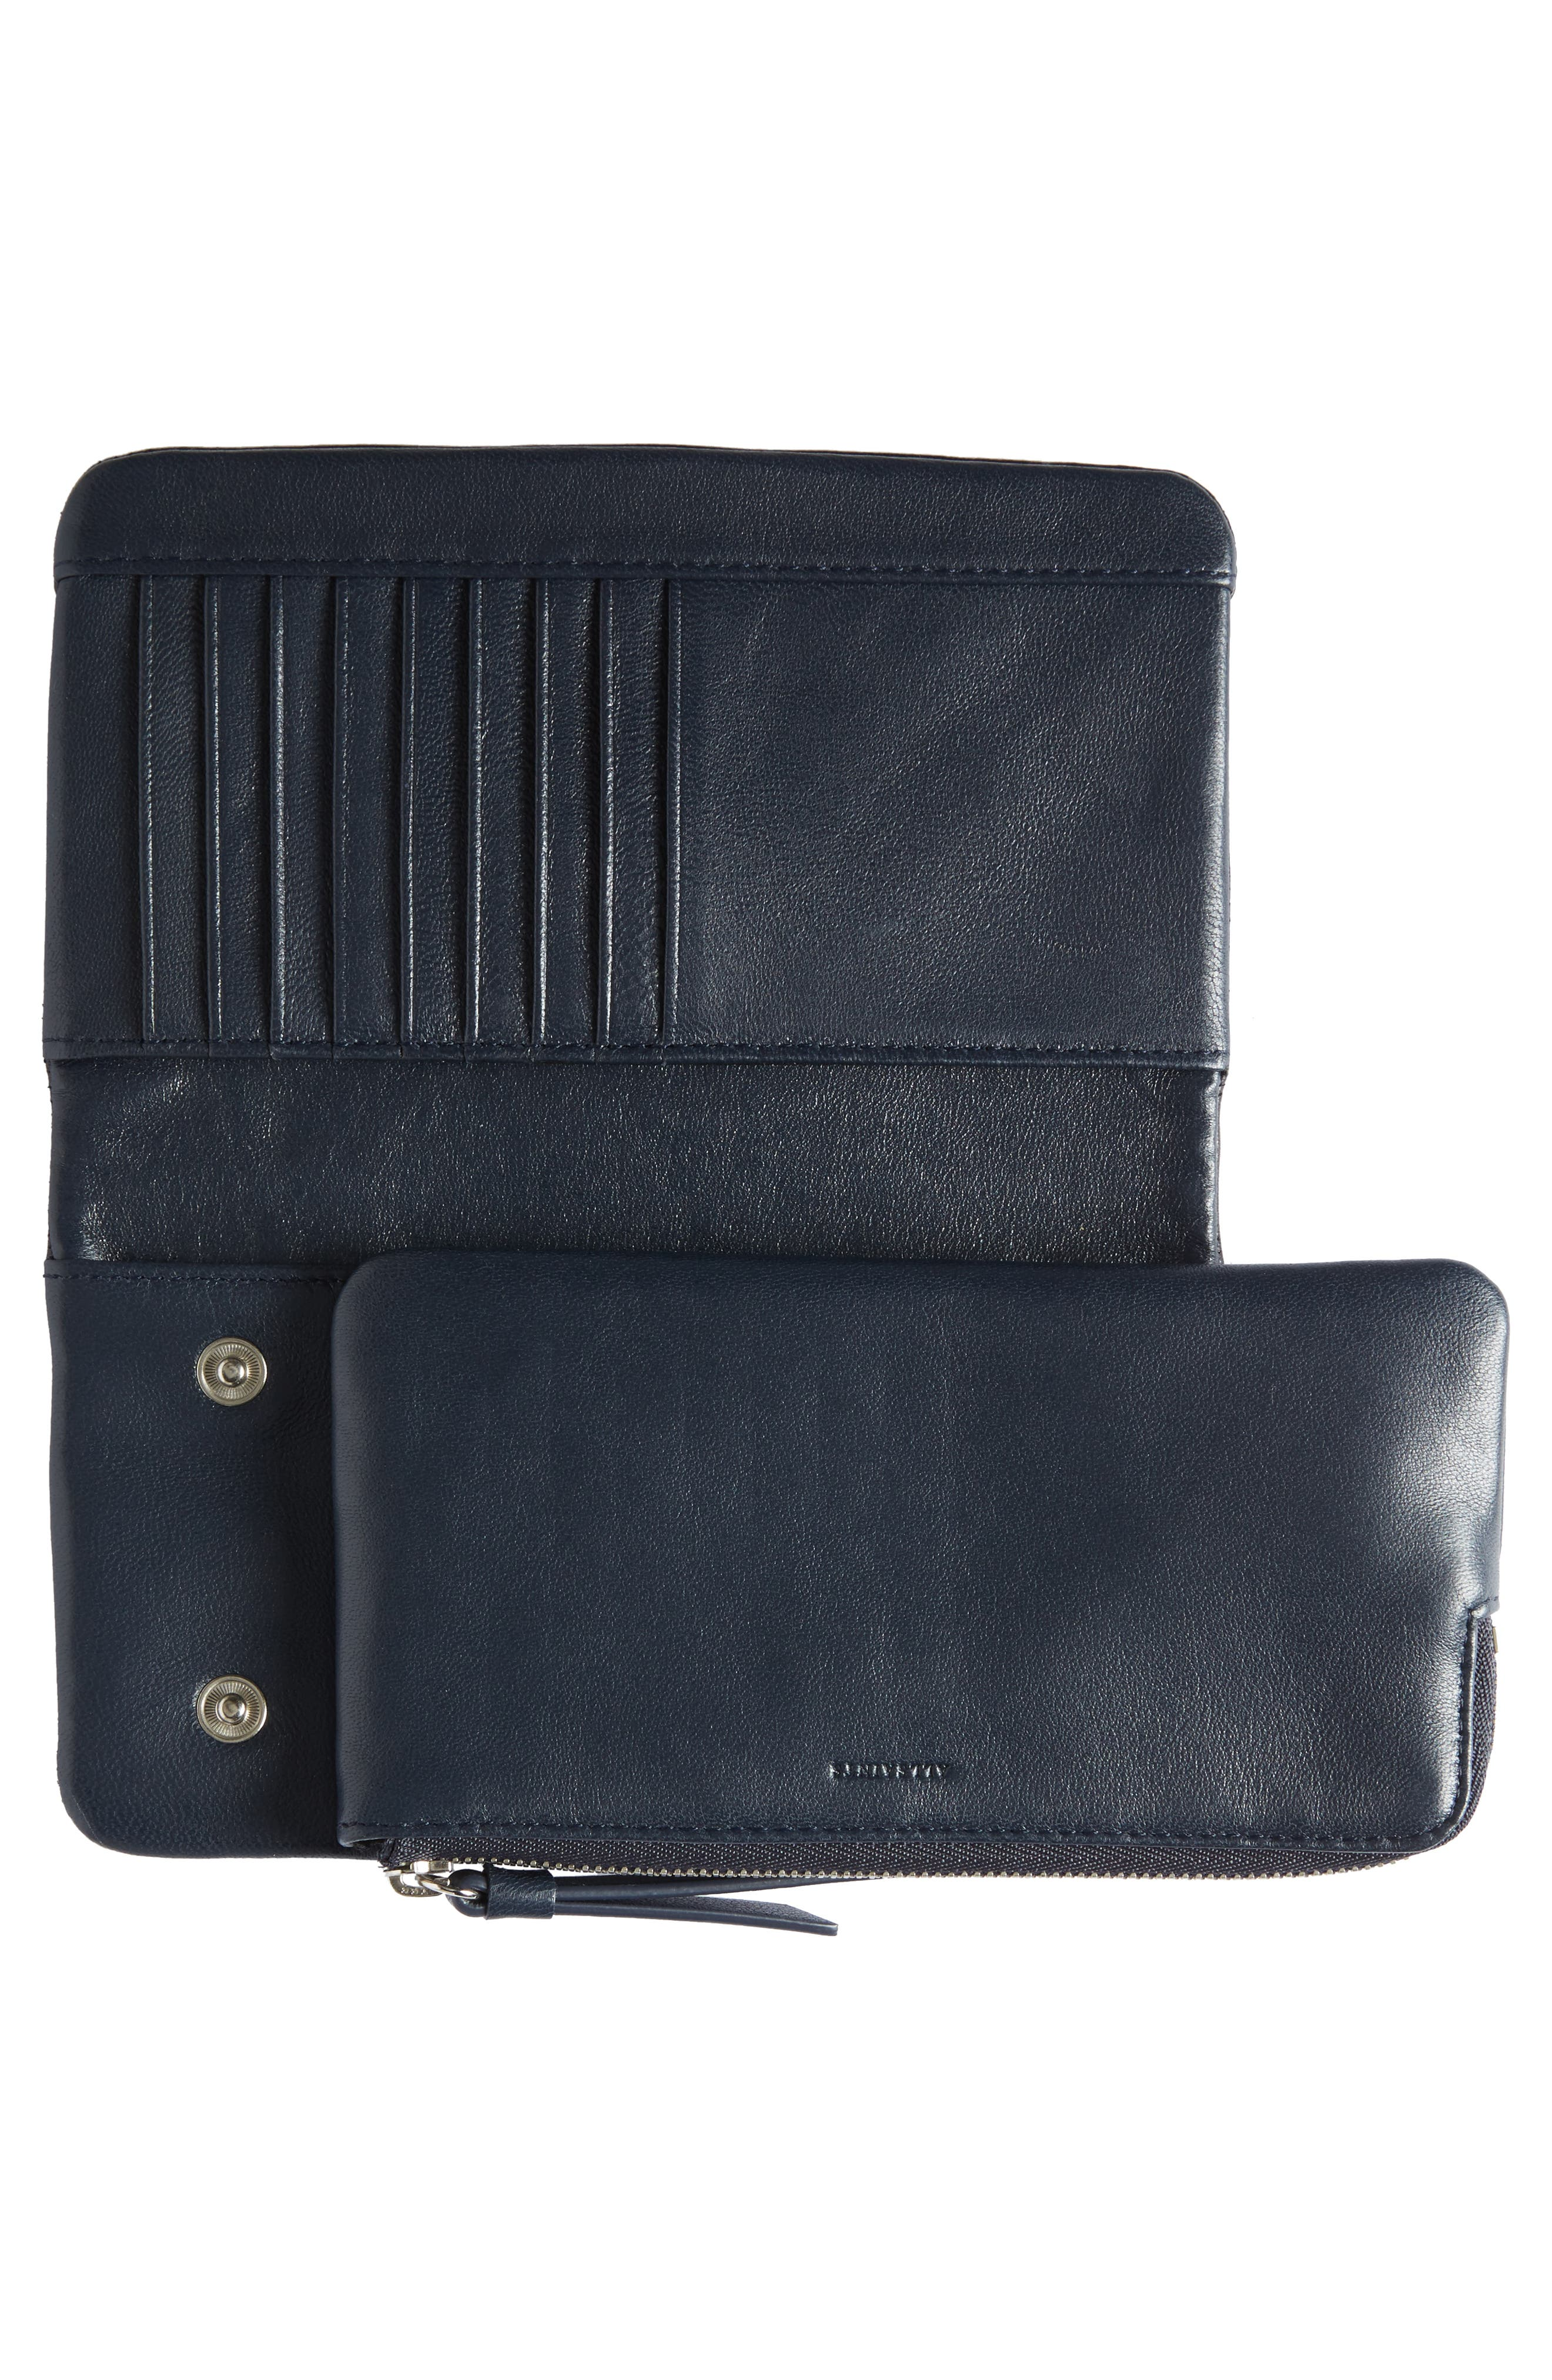 Paradise Lambskin Leather Wallet,                             Alternate thumbnail 4, color,                             002